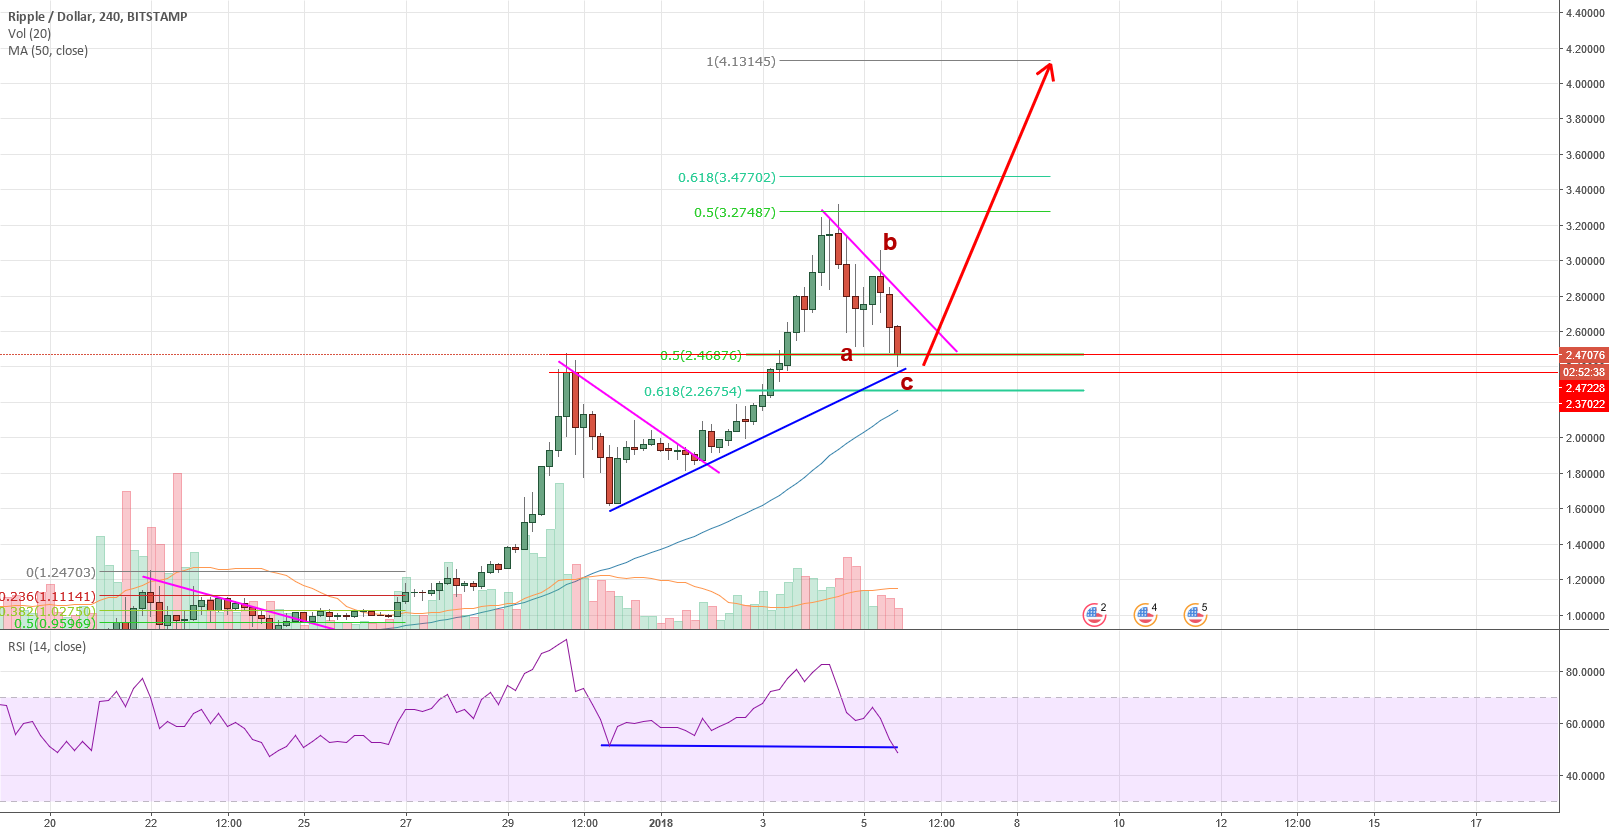 RIpple Short Term